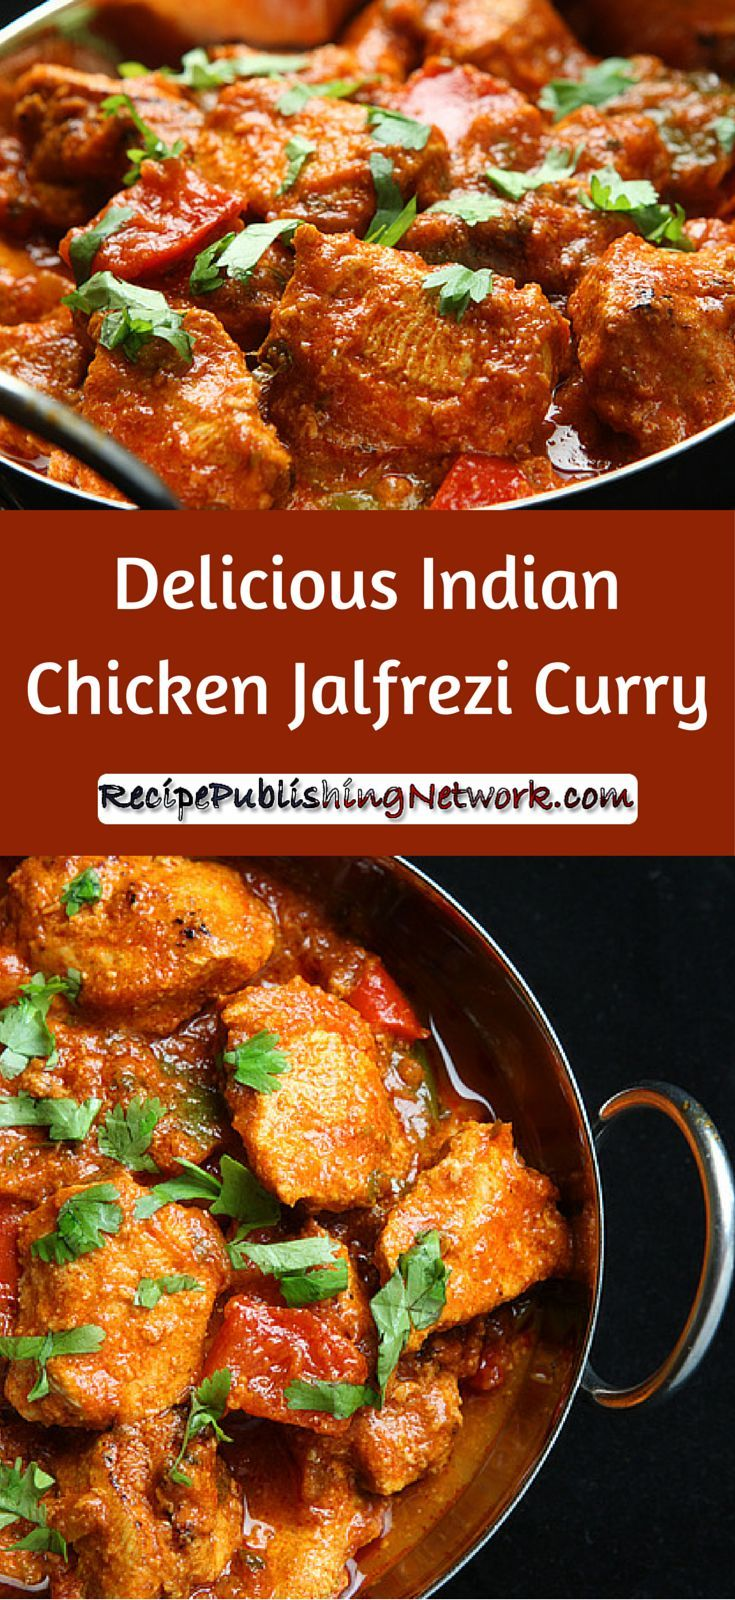 Delicious Indian Chicken Jalfrezi Curry Recipe Indian Food